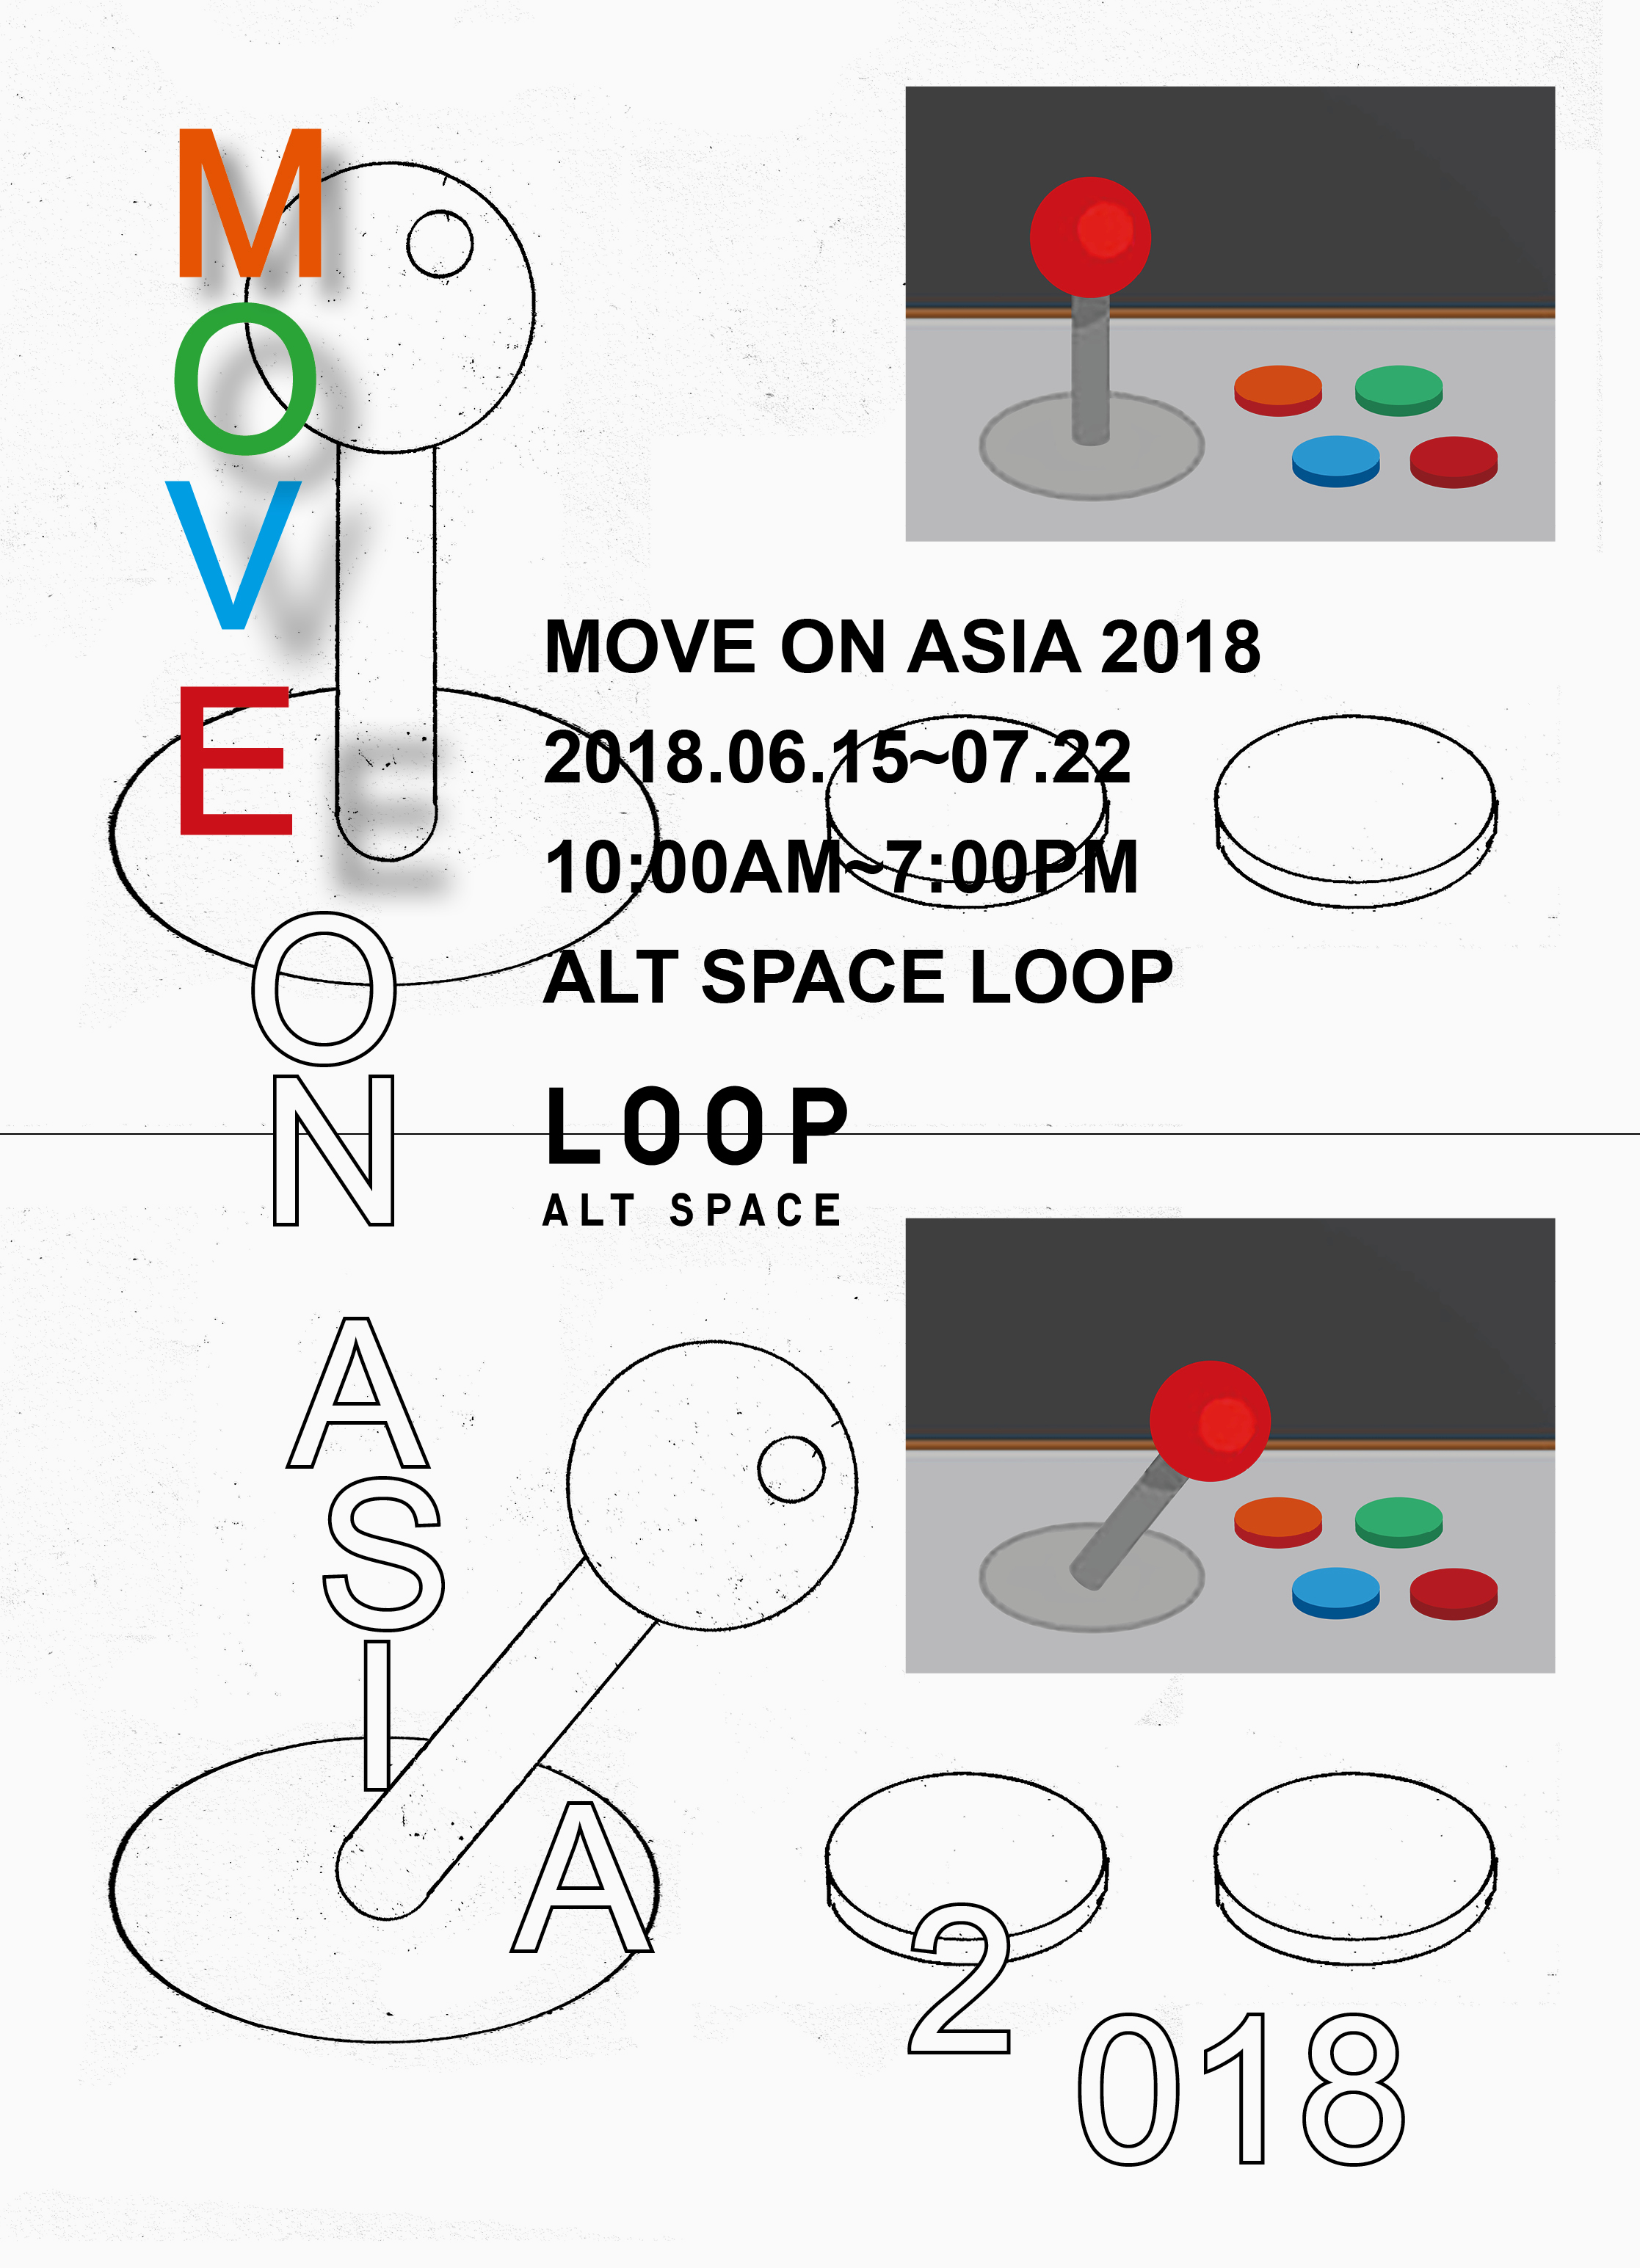 Move on Asia 2018